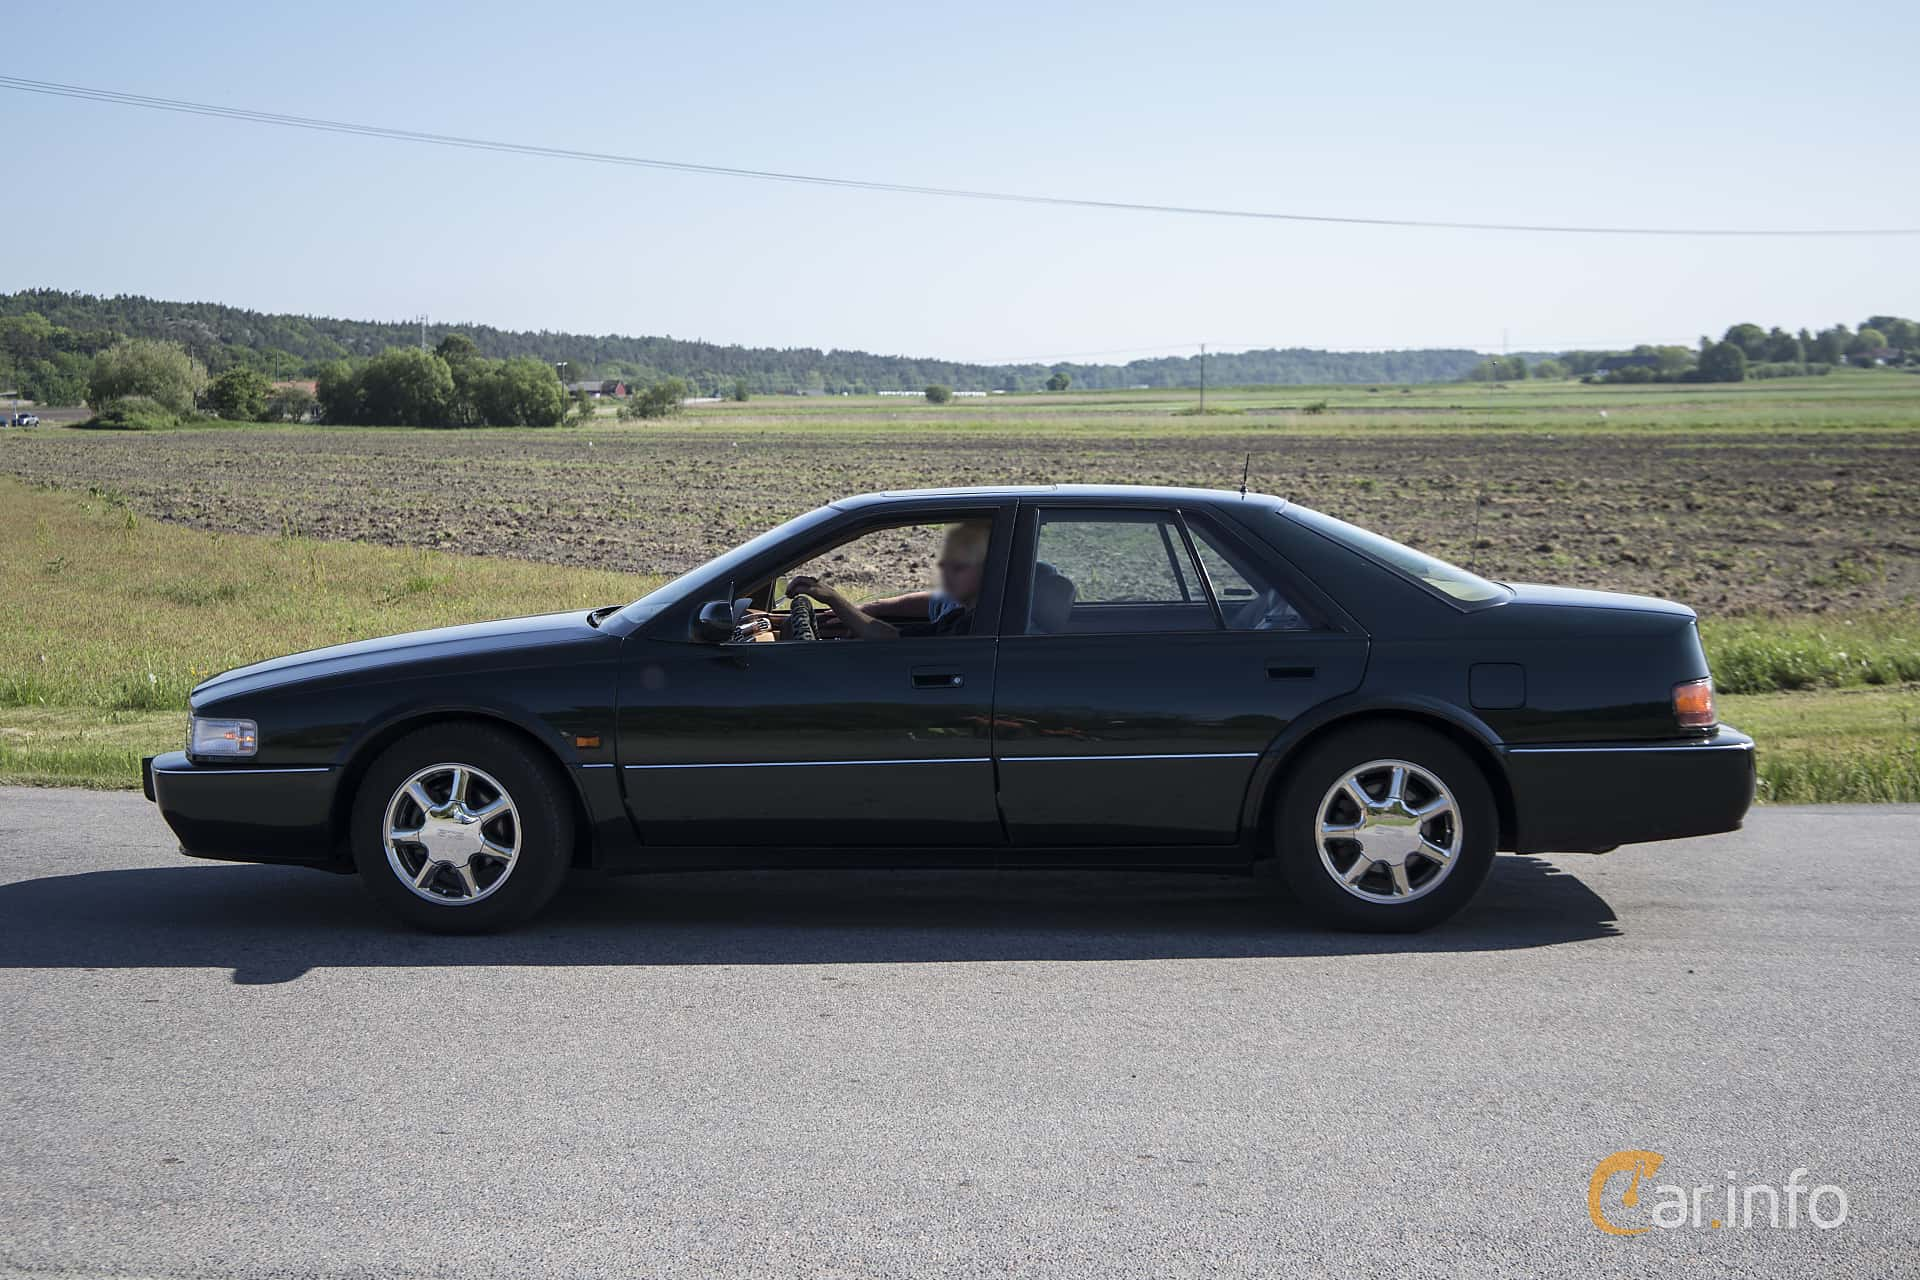 2 Images Of Cadillac Seville Sts 4 6 V8 Automatic 305hp 1996 By Pelle